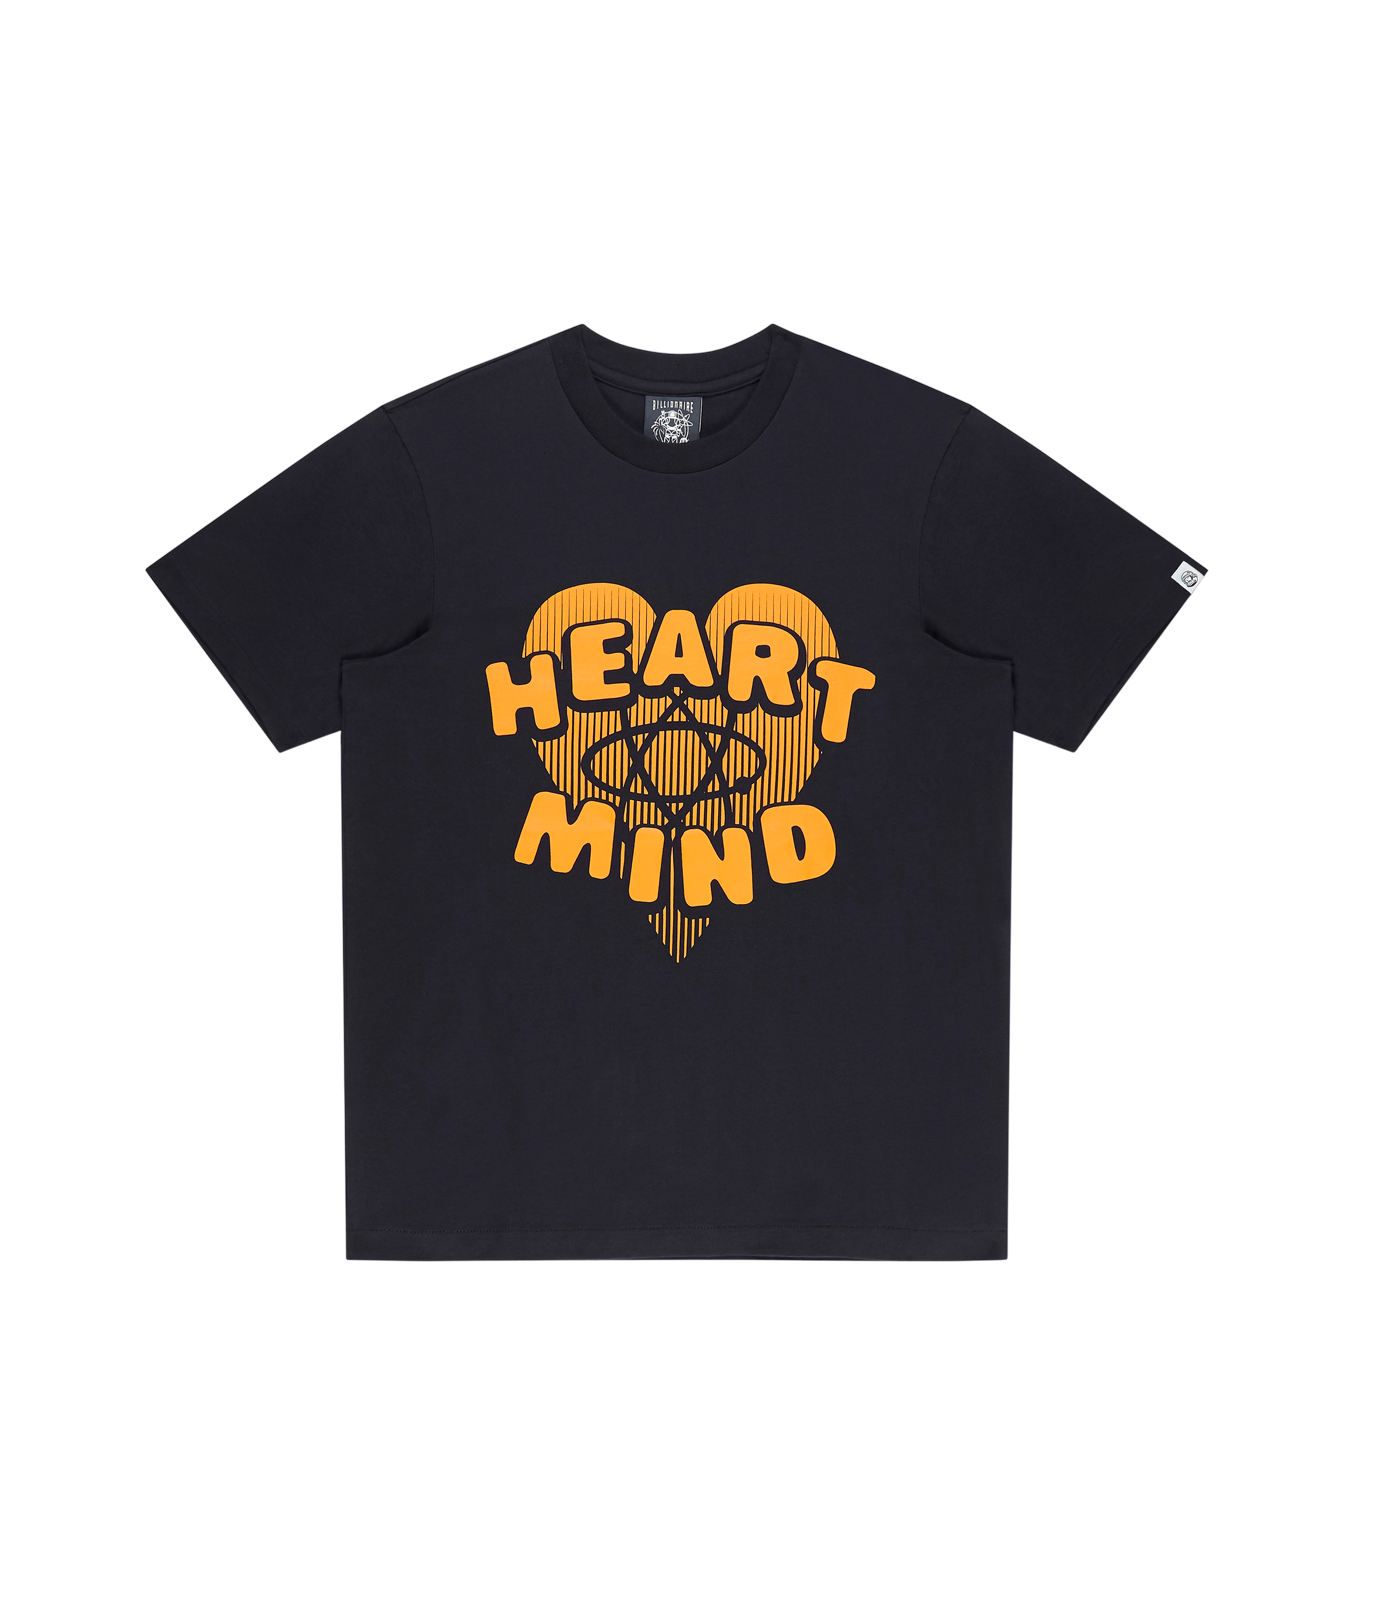 HEART & MIND GRAPHIC T-SHIRT - NAVY/YELLOW